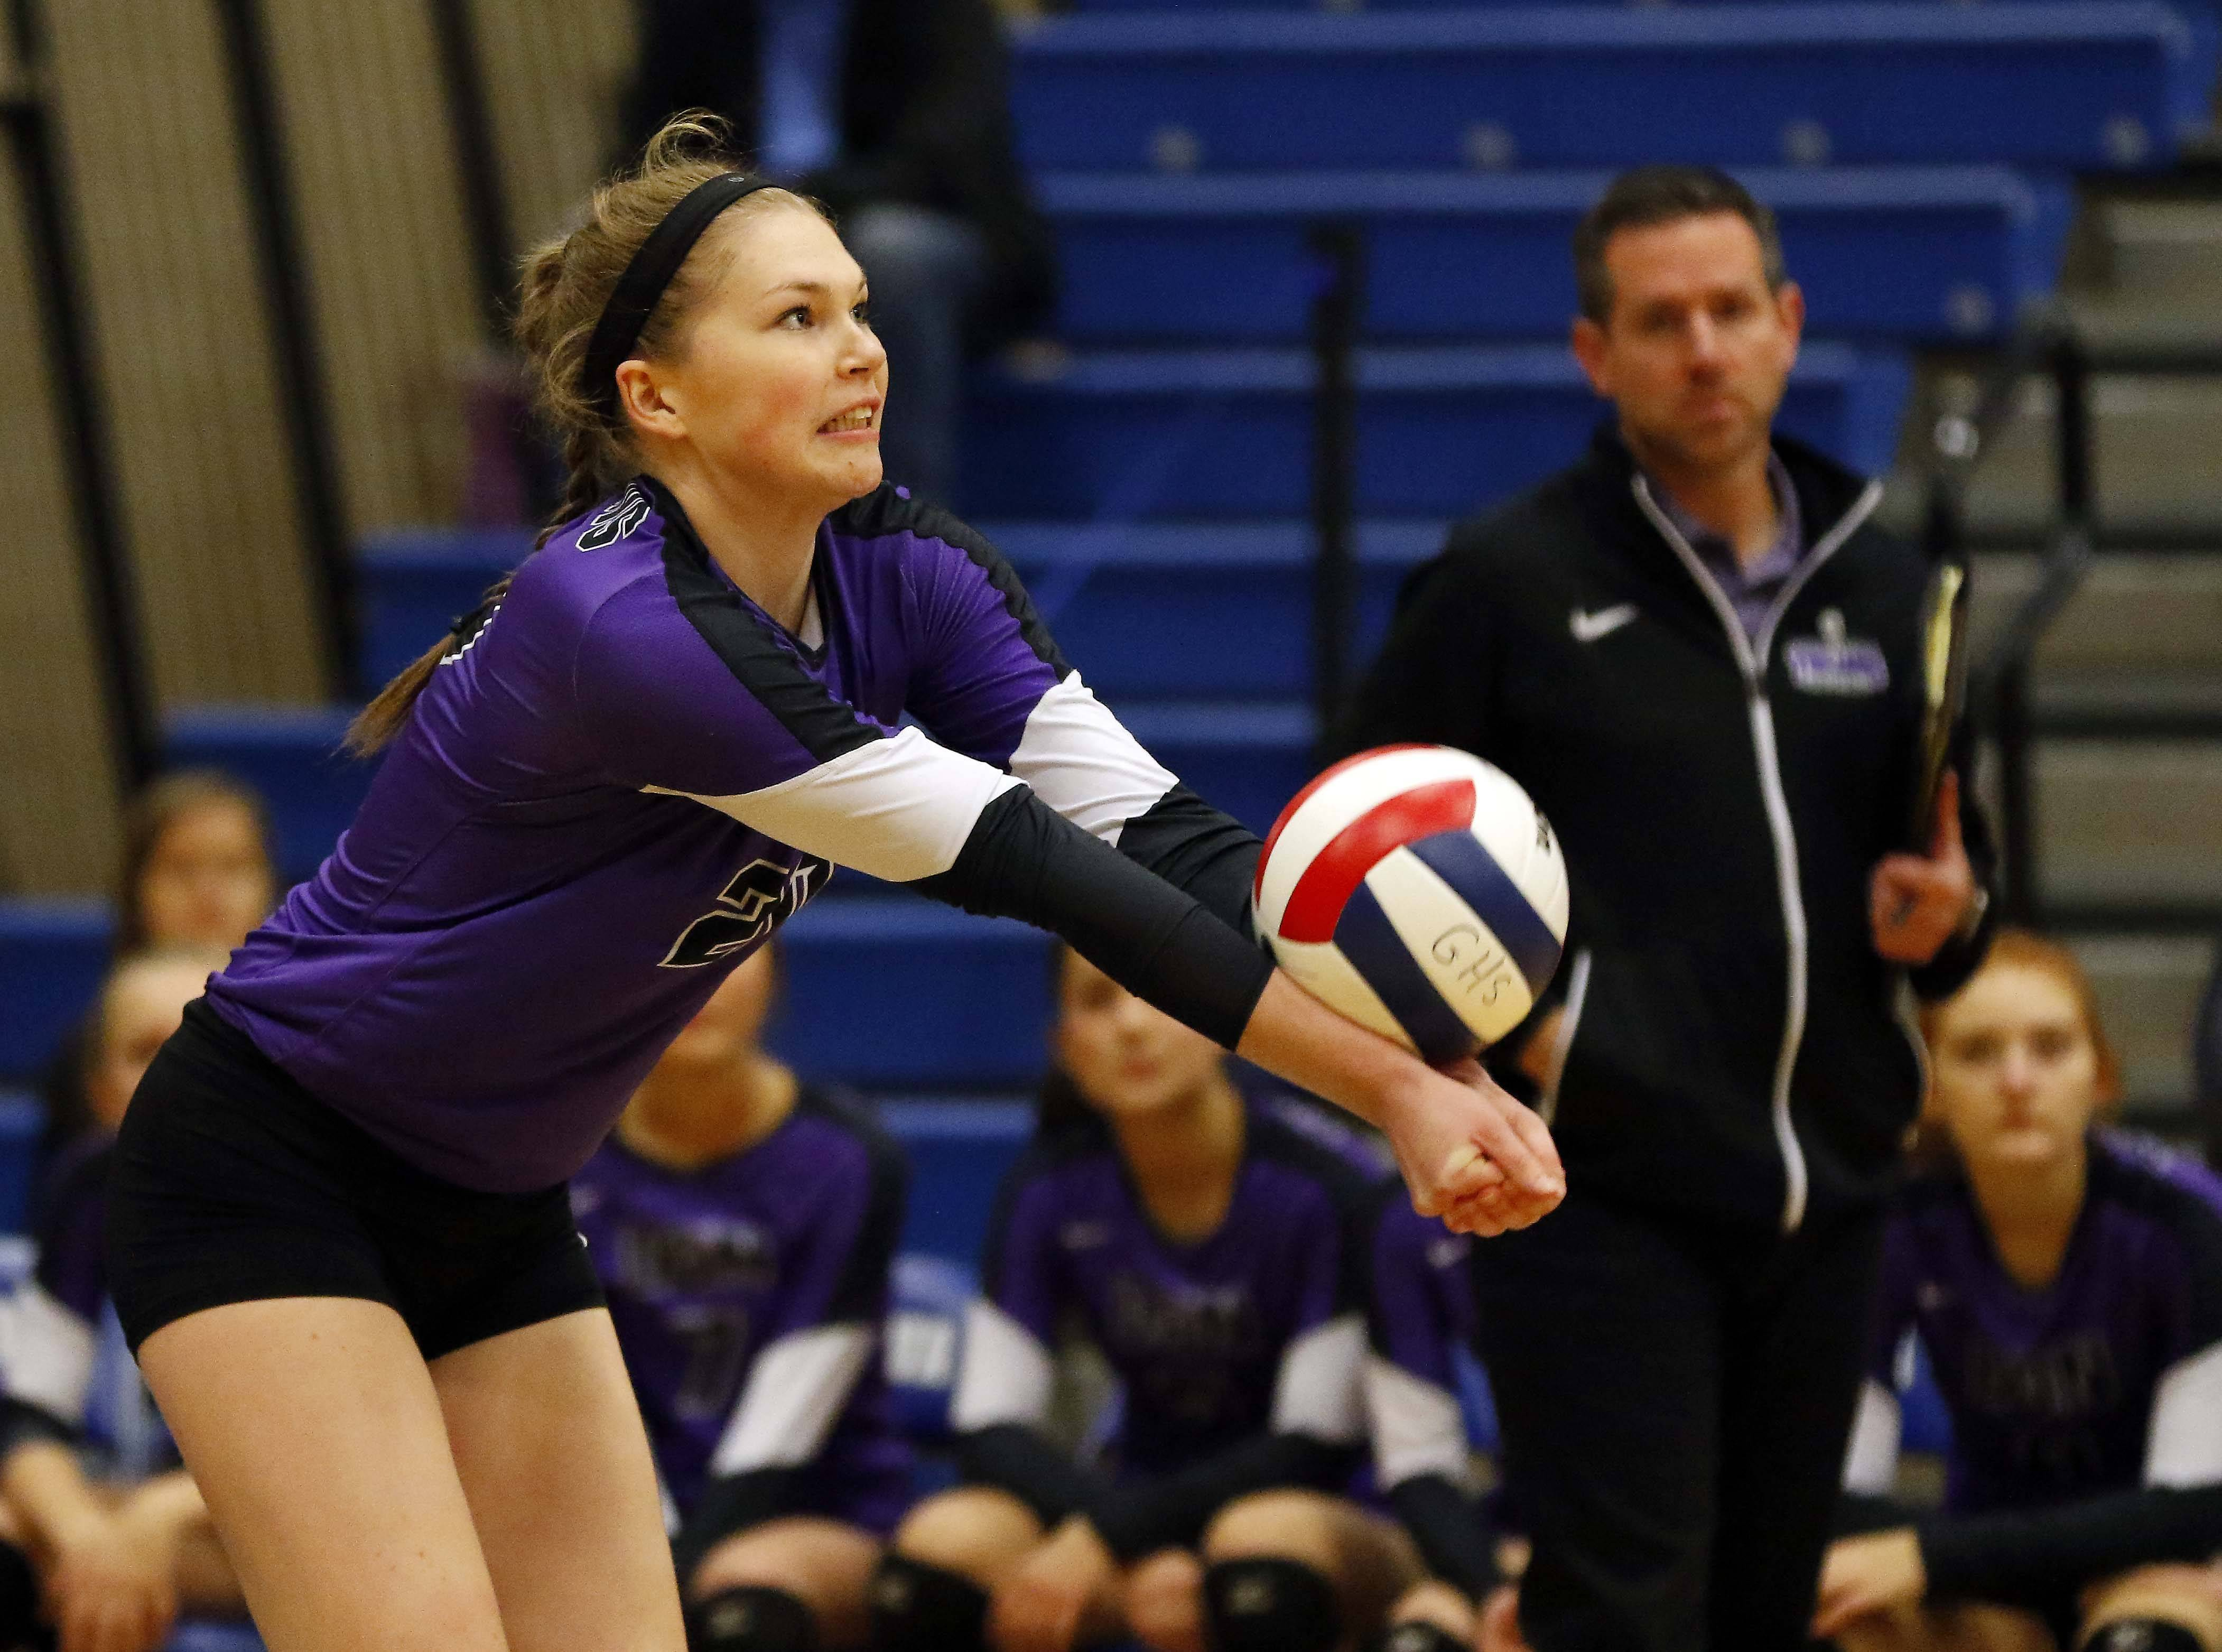 Downers Grove North's Clare Delaplane (20) returns a hit during the Girls volleyball Friday in the Geneva volleyball supersectional.